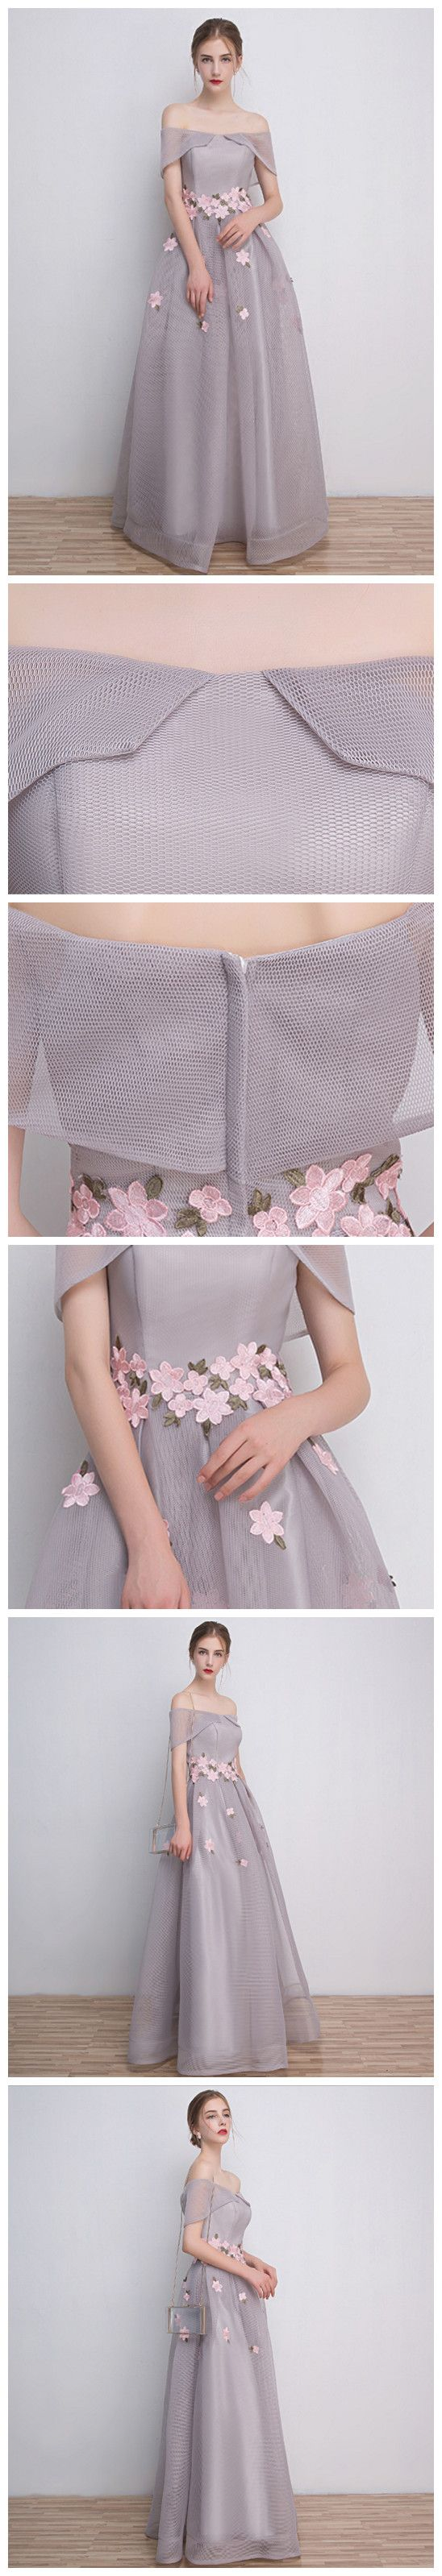 CHIC A-LINE OFF-THE-SHOULDER GRAY TULLE APPLIQUE MODEST PROM DRESS EVENING DRESS AM432